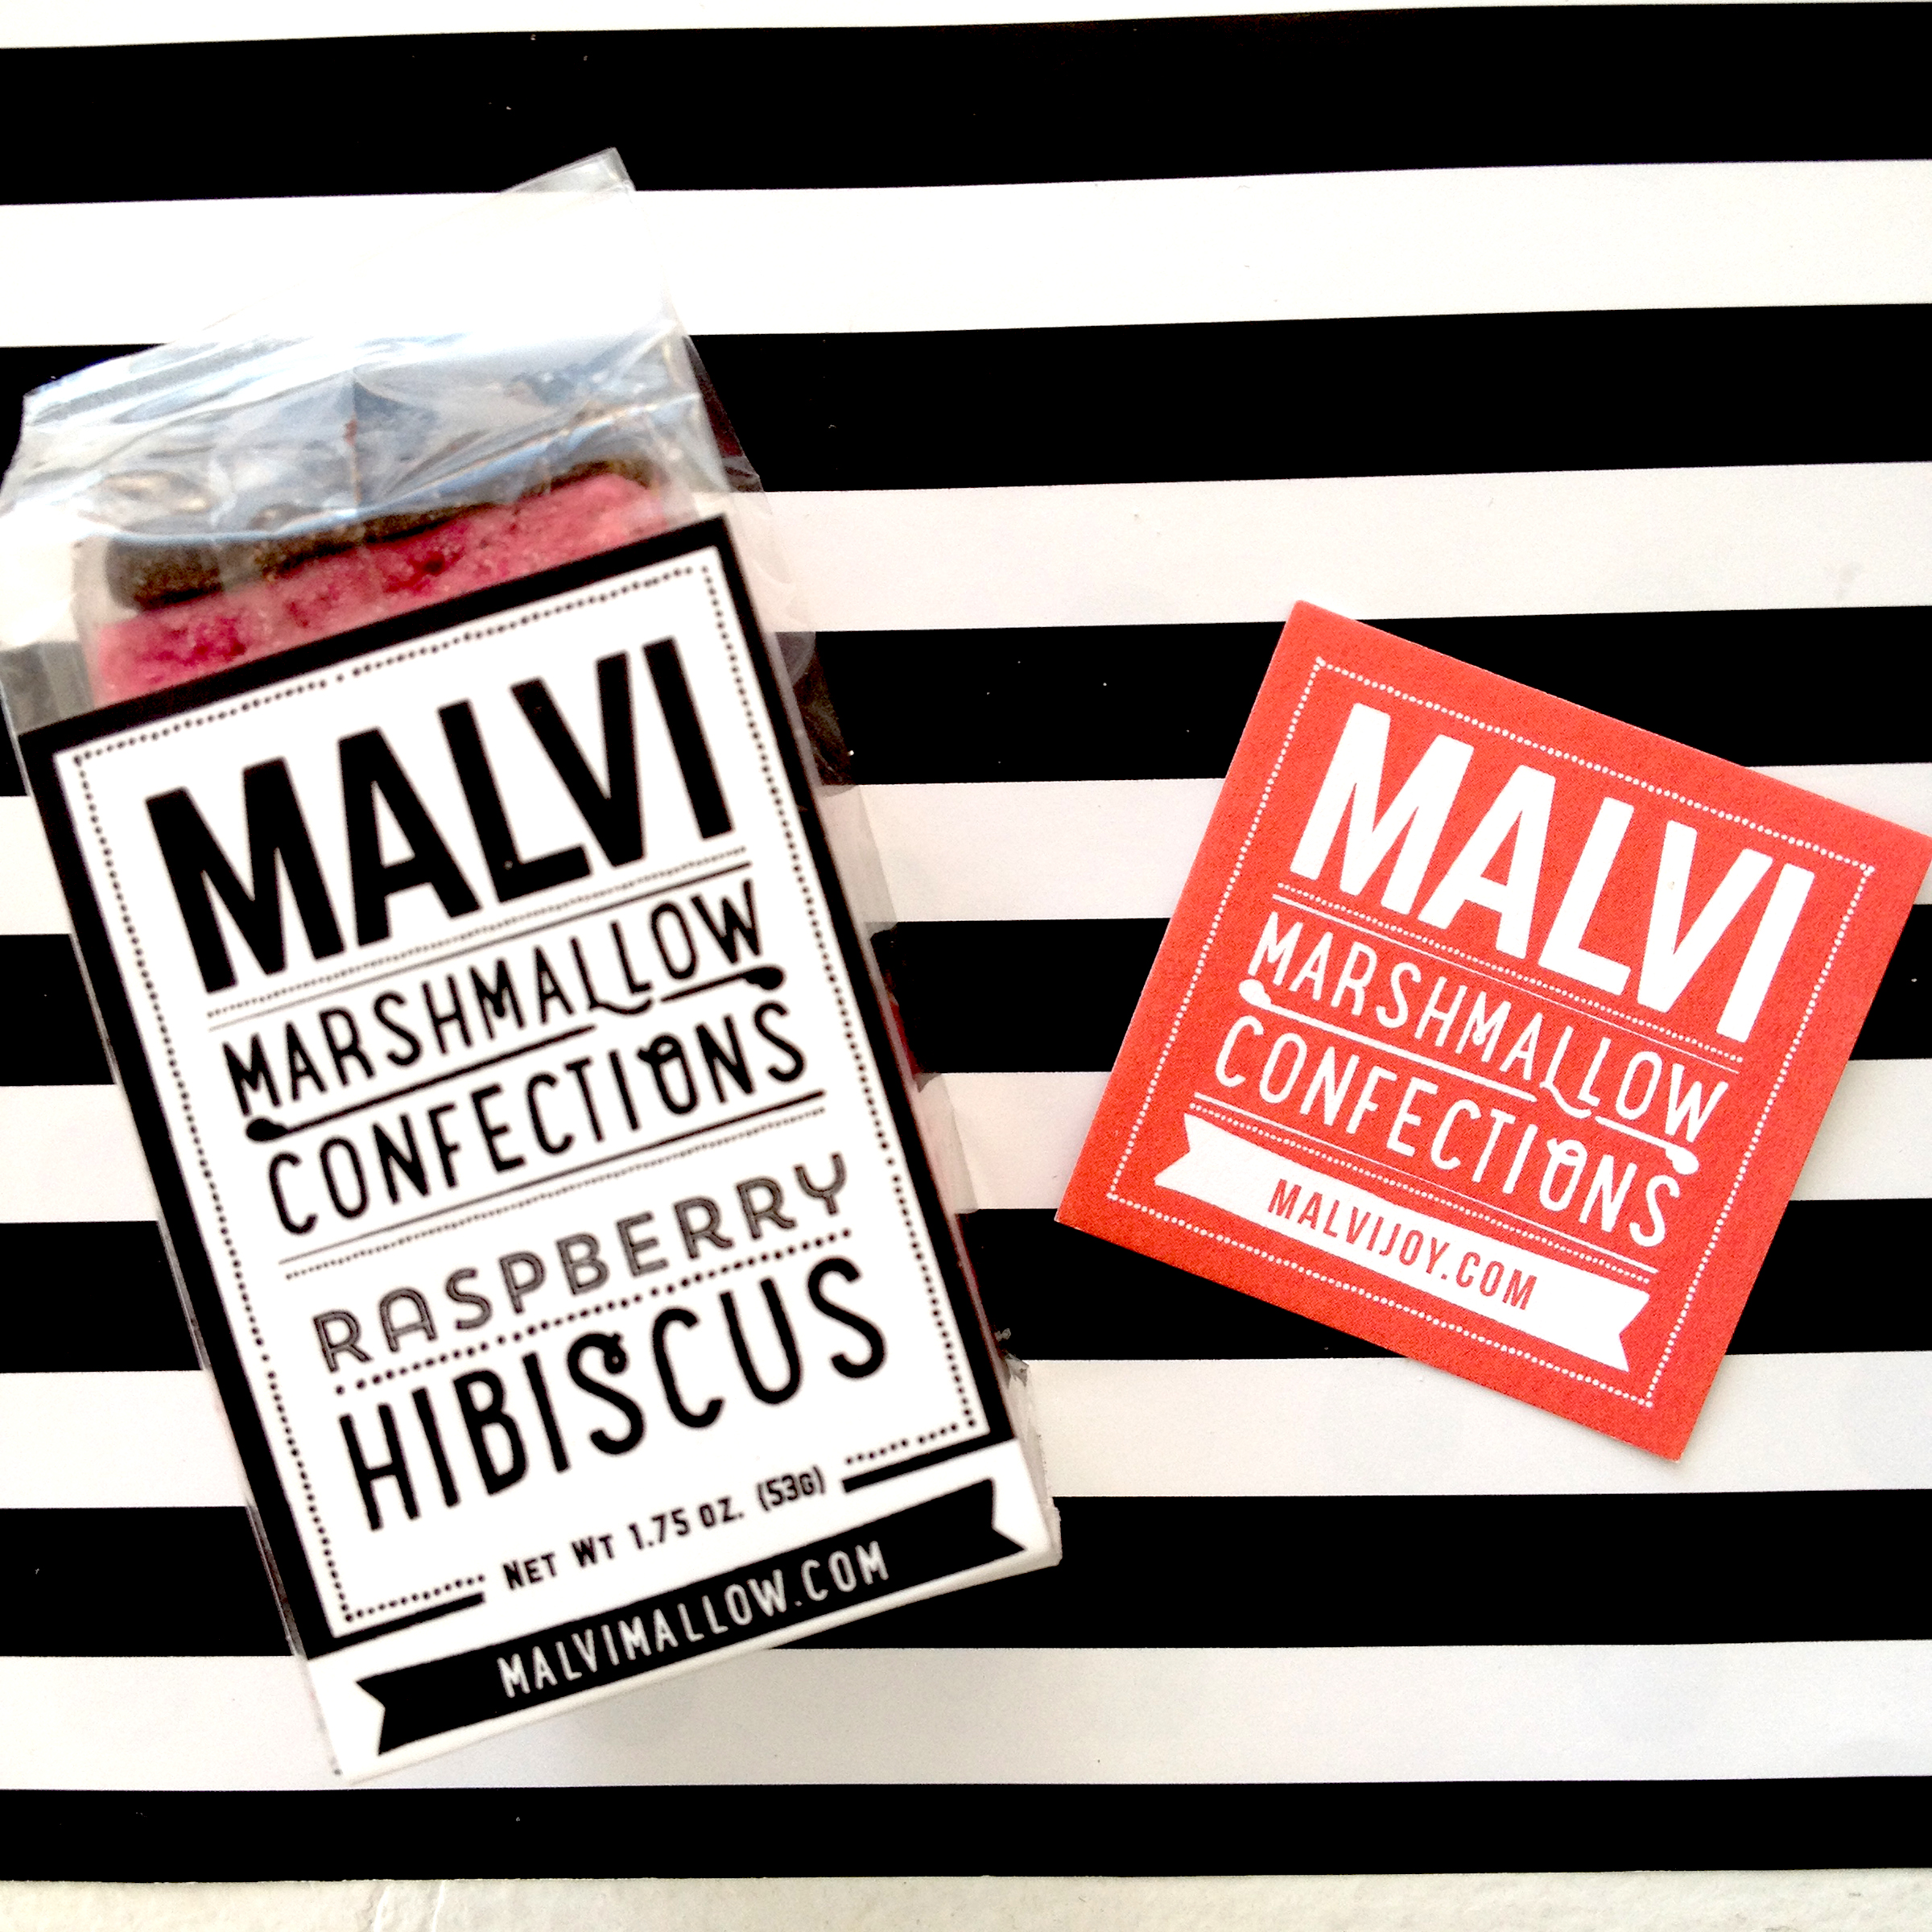 So much  Malvi  goodness! Our attendees scarfed these down in a matter of seconds. This is our new addiction. I've been eating one every night, and I didn't think I even liked marshmallows. *hides face* If you warm them up for 5-7 seconds in the microwave, you have an upgraded s'more.